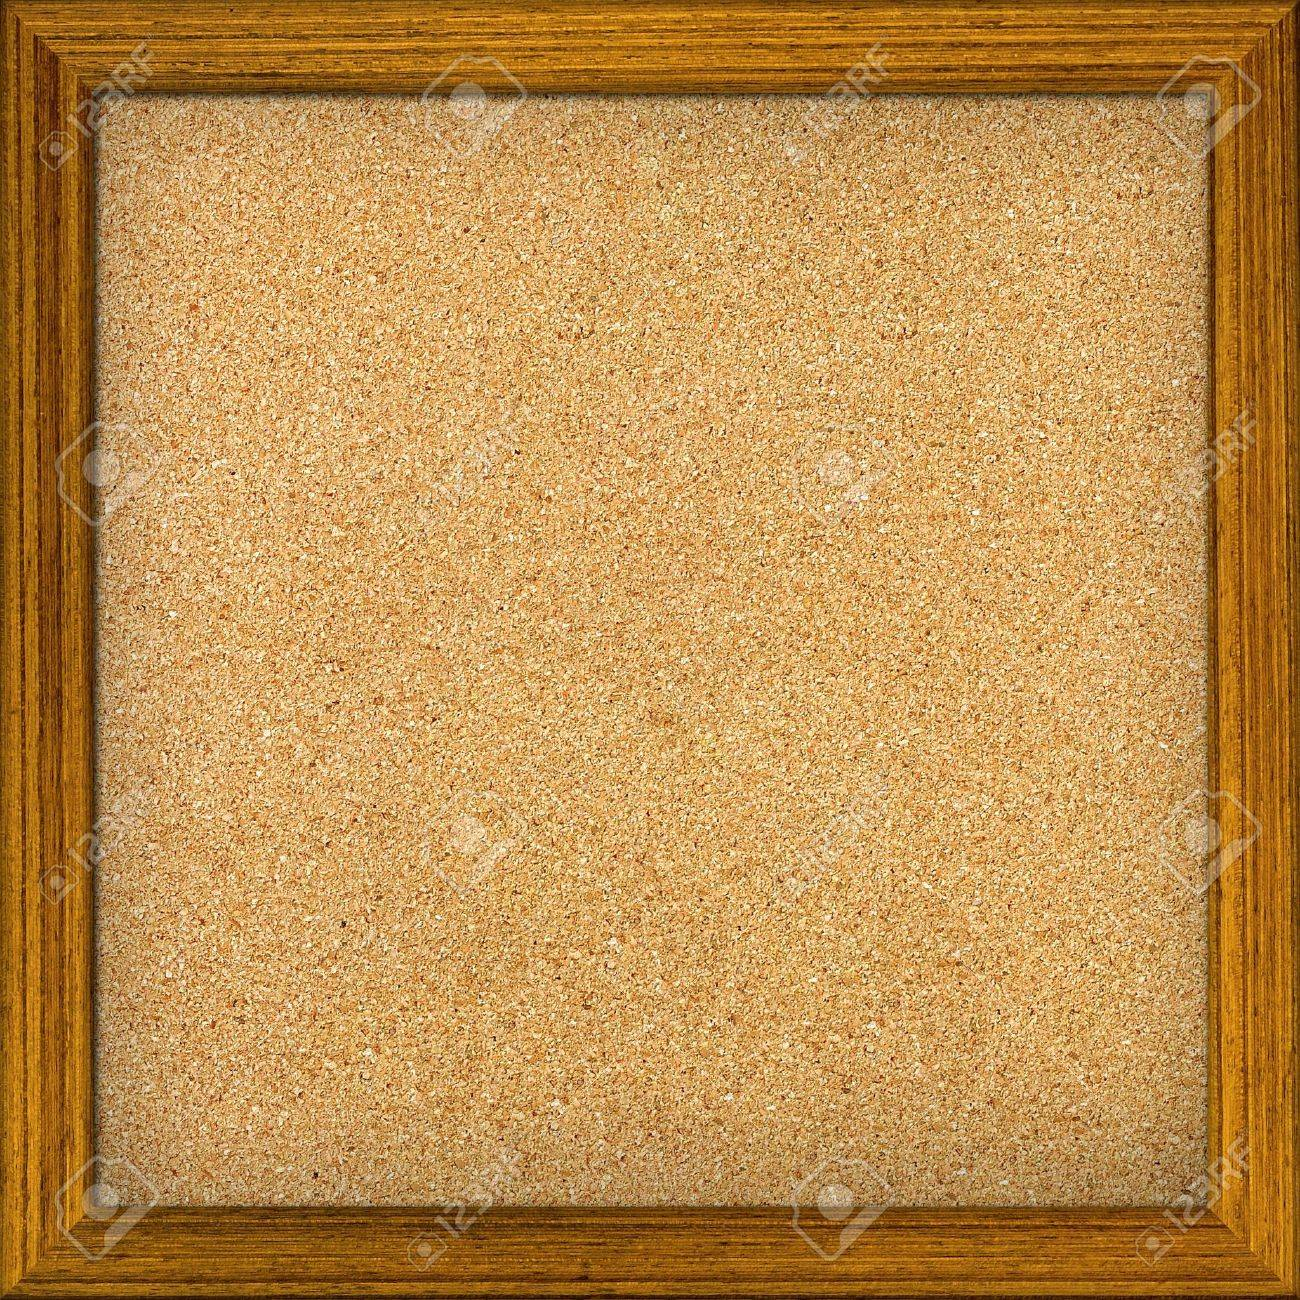 pin board for office. empty office cork notice board isolated with wood frame stock photo 9971678 pin for